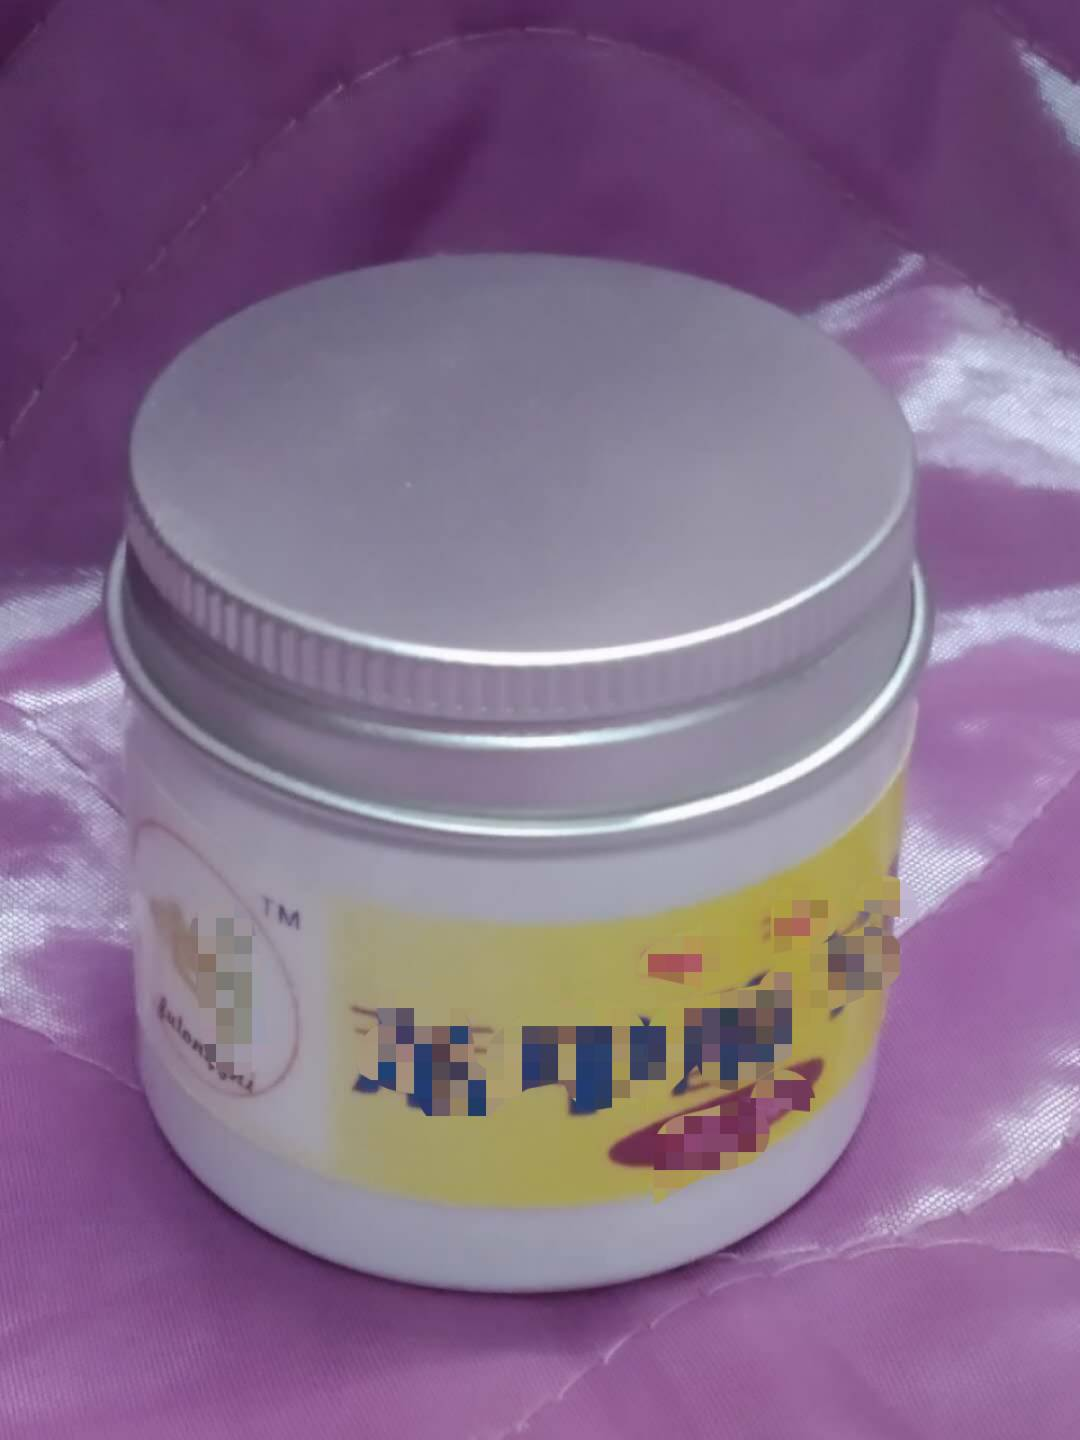 Benzyl Benzoate Cream Compound Benzyl Nitrate Cream Demodex Folliculitis  Compound Beta Nitrate Cream 60g